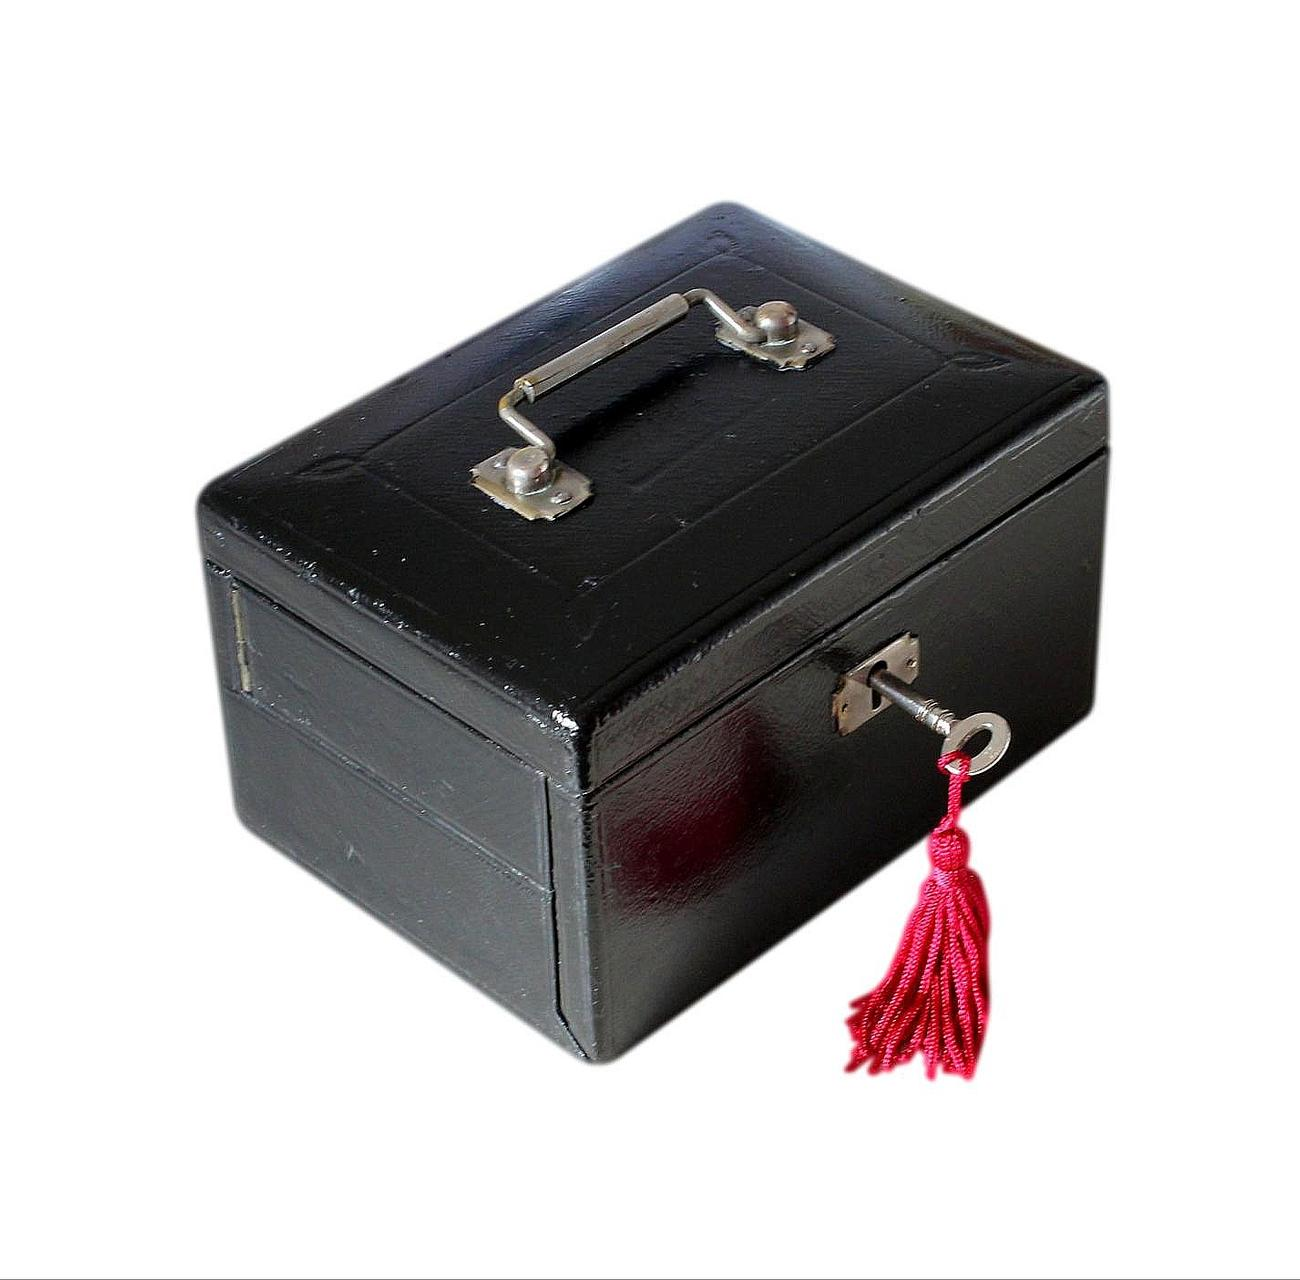 Antique_leather_cash_jewellery_box_2.jpg